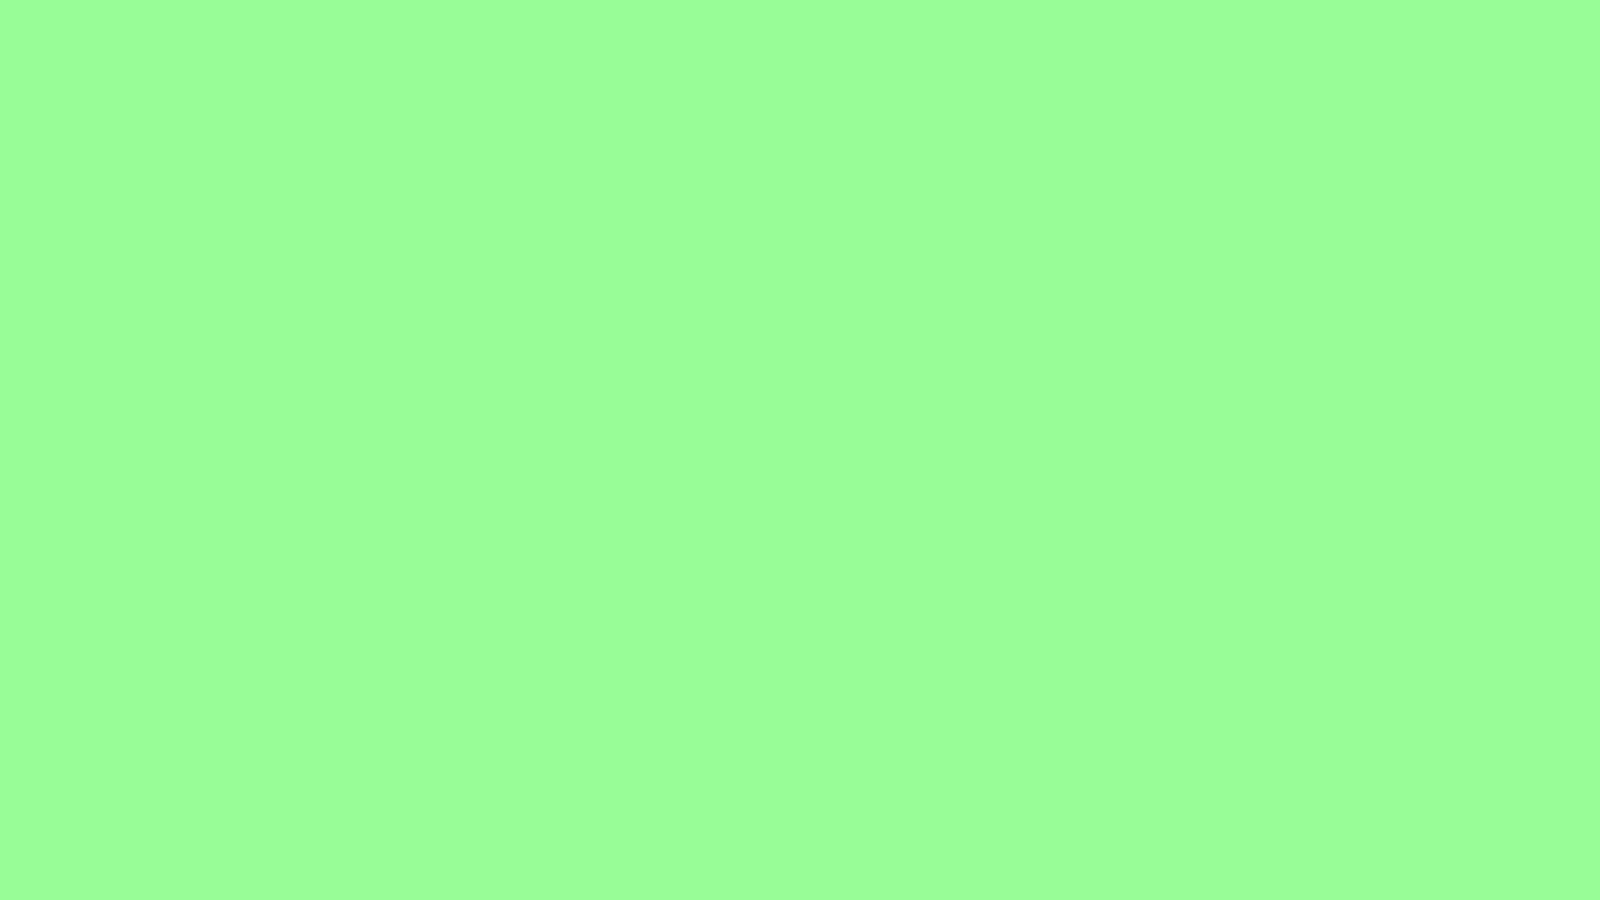 1600x900 Mint Green Solid Color Background